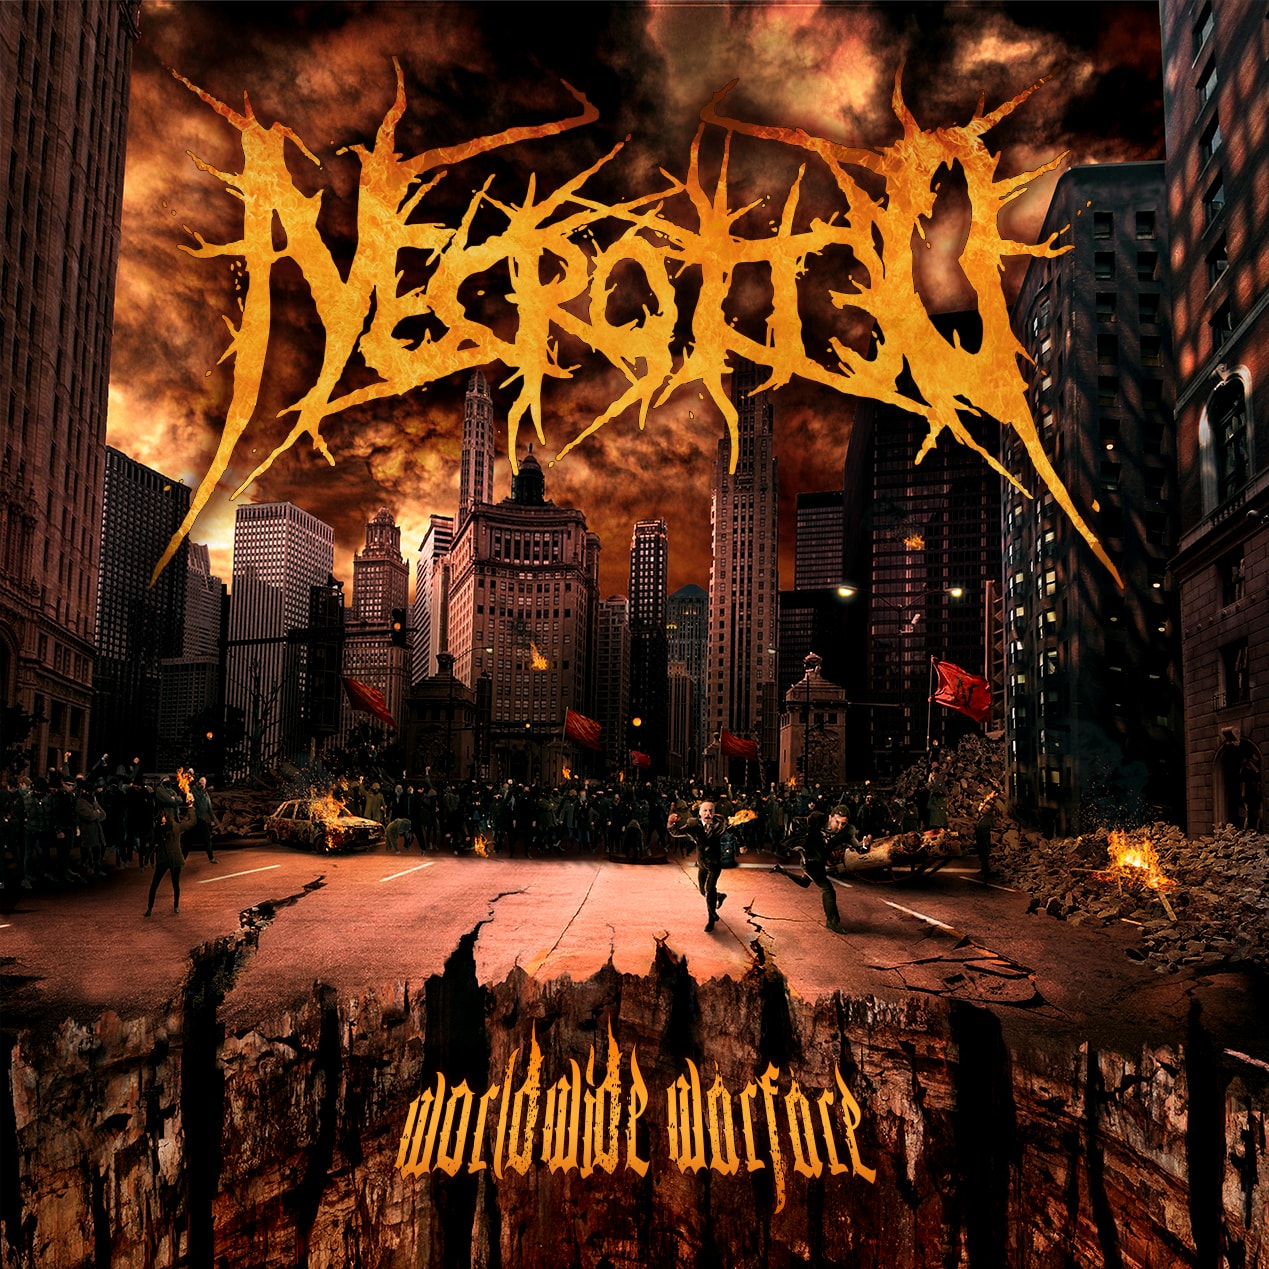 necrotted-worldwide-warfare